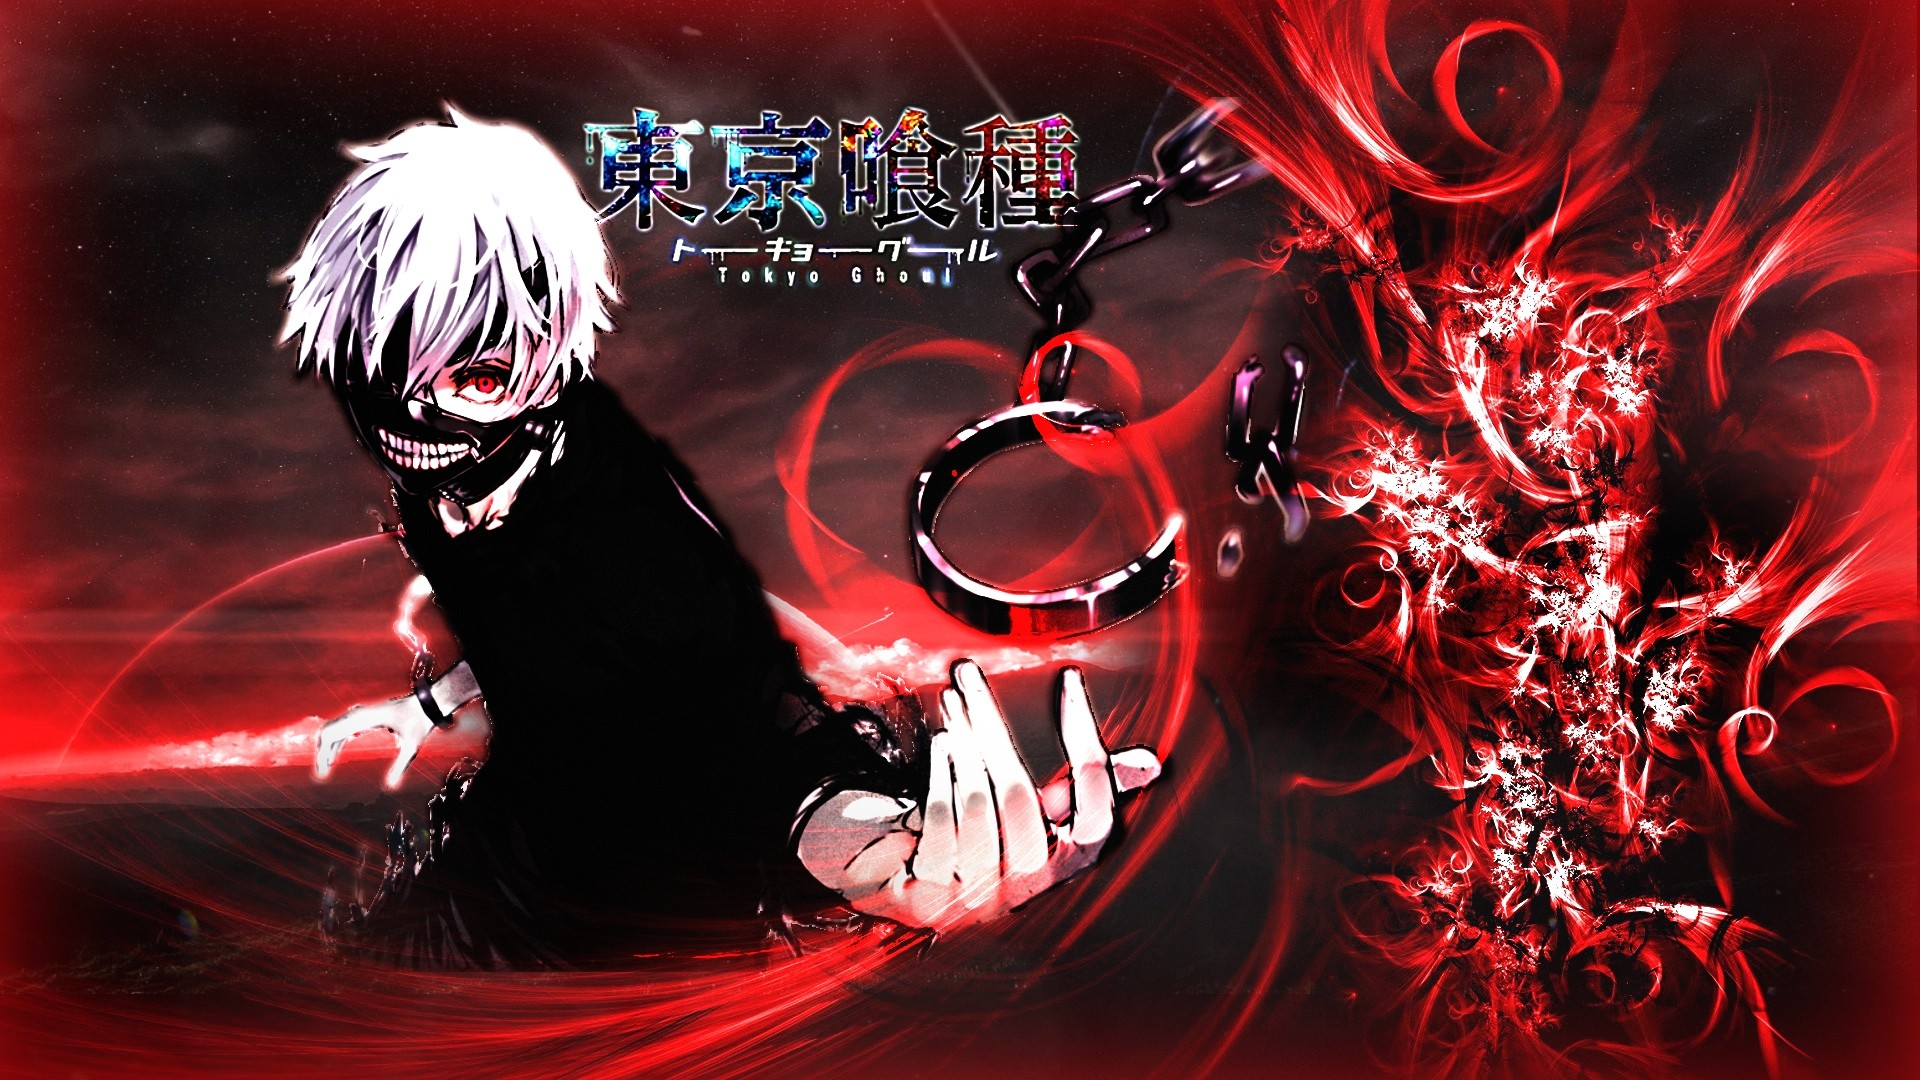 Tokyo Ghoul Wallpaper Hd Download Free Cool Backgrounds For